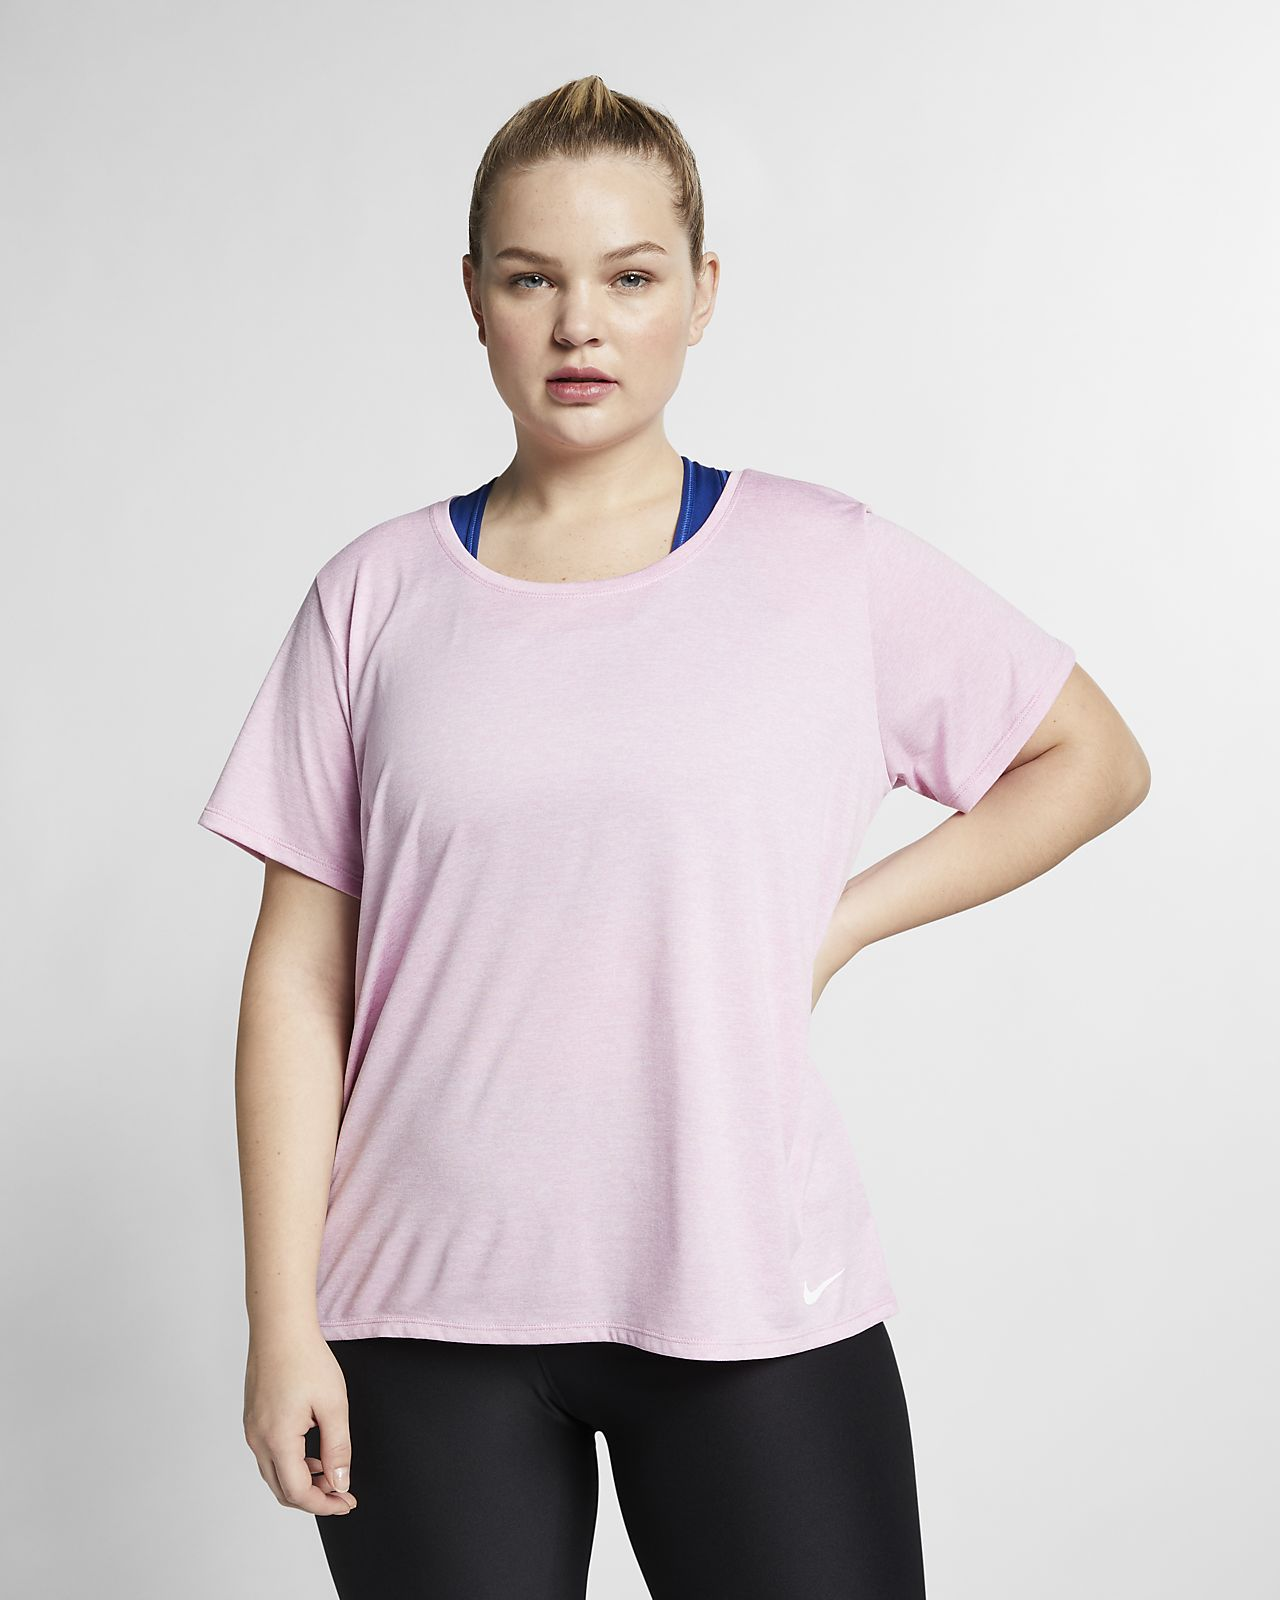 98915e9cc2f Nike Dri-FIT Legend (Plus Size) Women s Short Sleeve Training Top ...